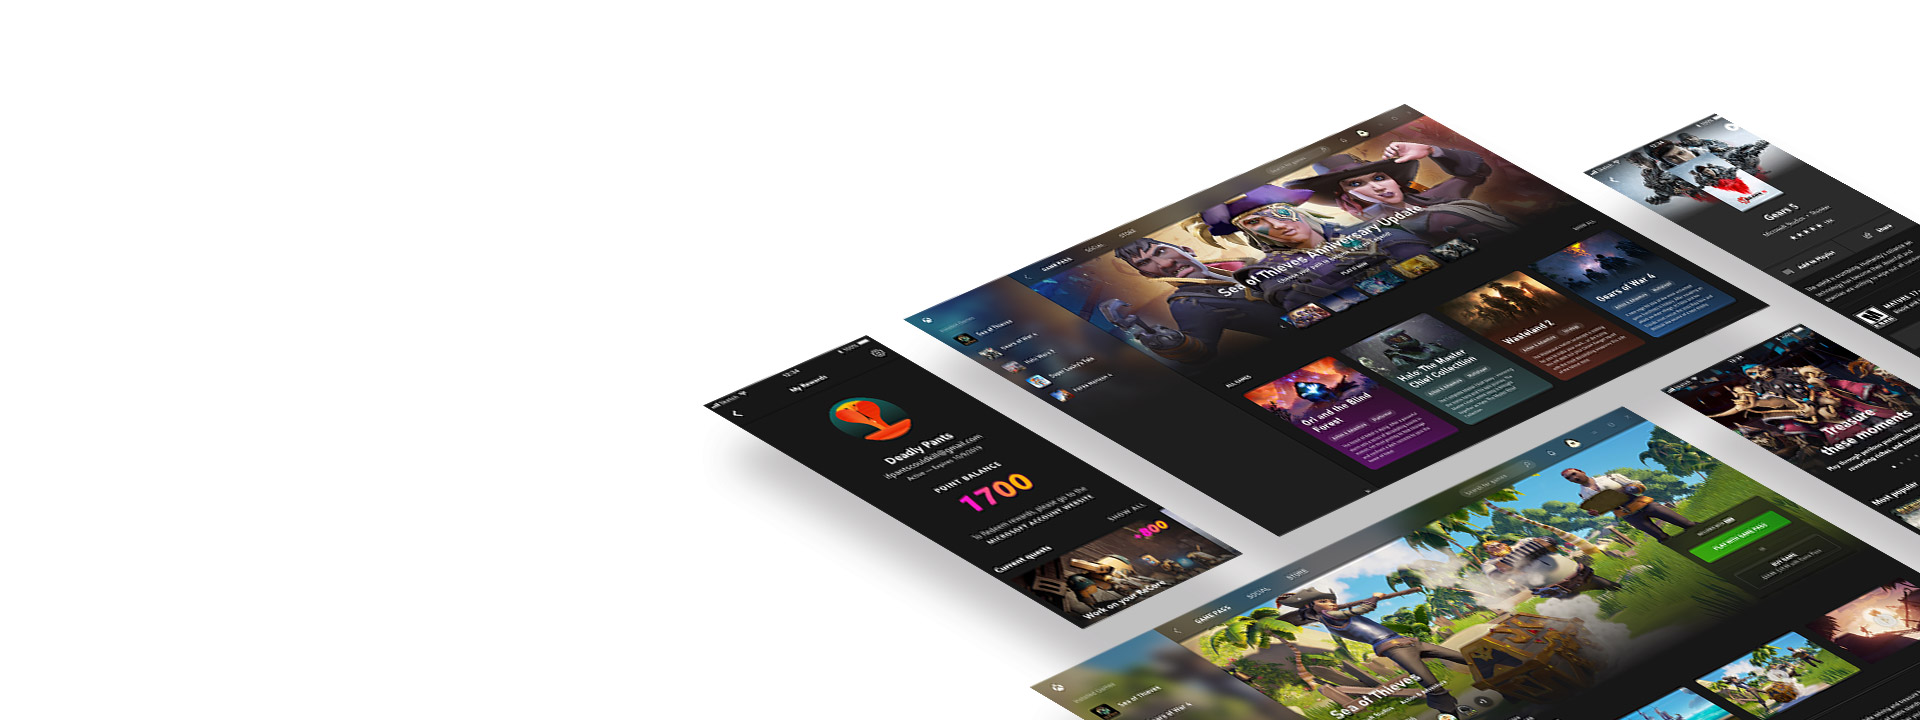 Écrans mobiles flottant et affichant l'application Xbox Game Pass